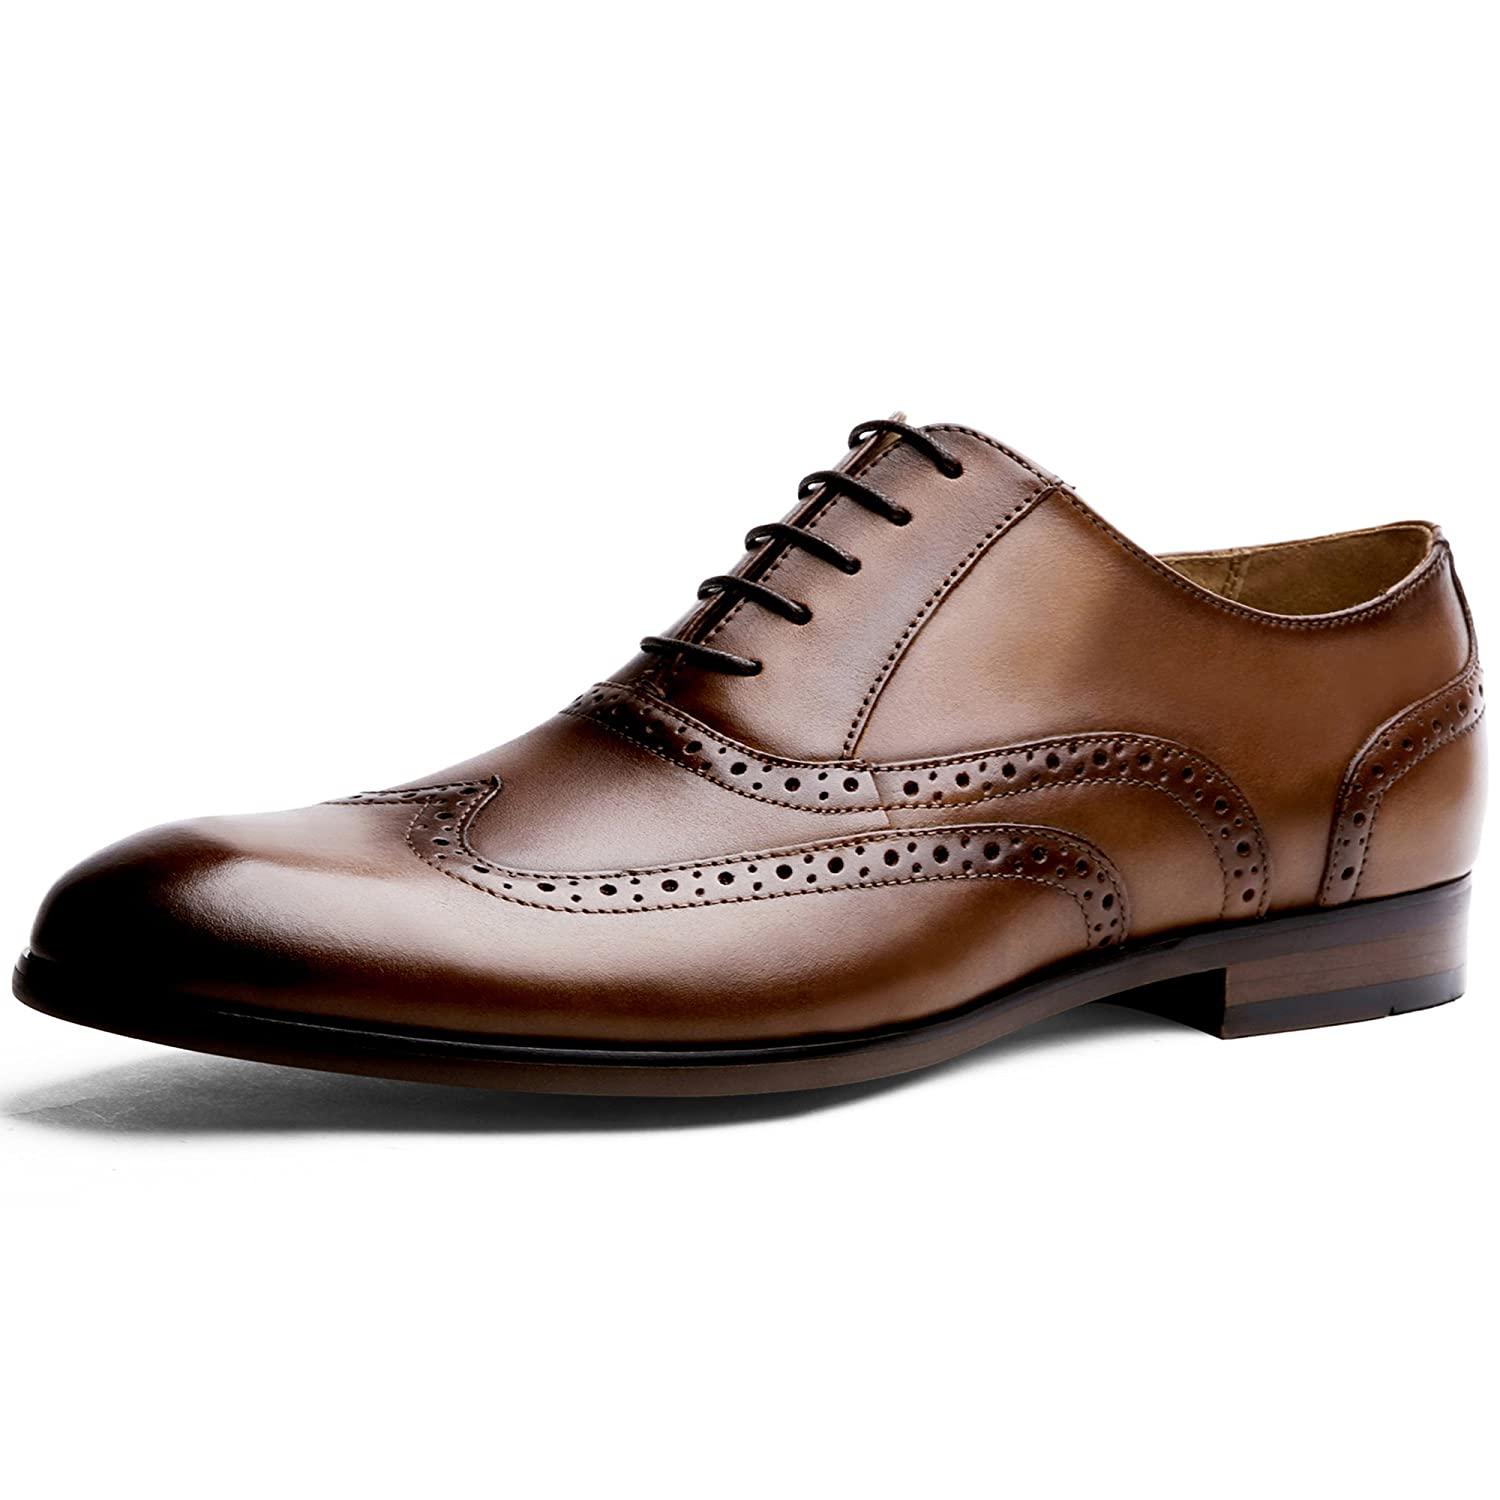 DESAI Scarpe Stringate Basse Oxford Brogue Uomo Nero/Marrone Marrone